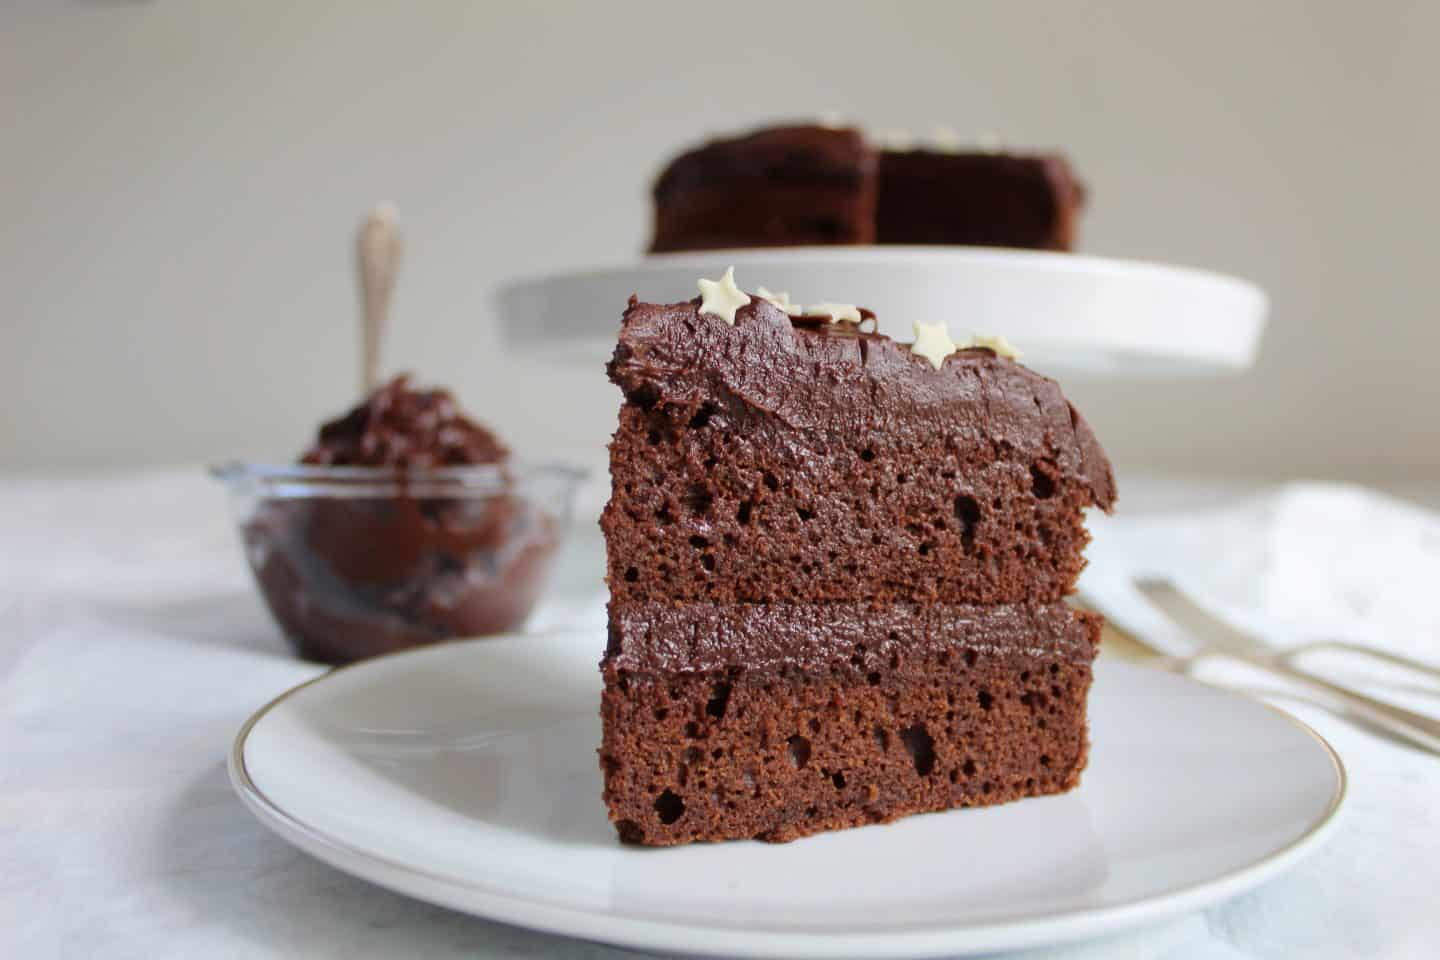 GLUTEN FREE CHOCOLATE CAKE RECIPE WITH THICK CHOCOLATE GANACHE FROSTING